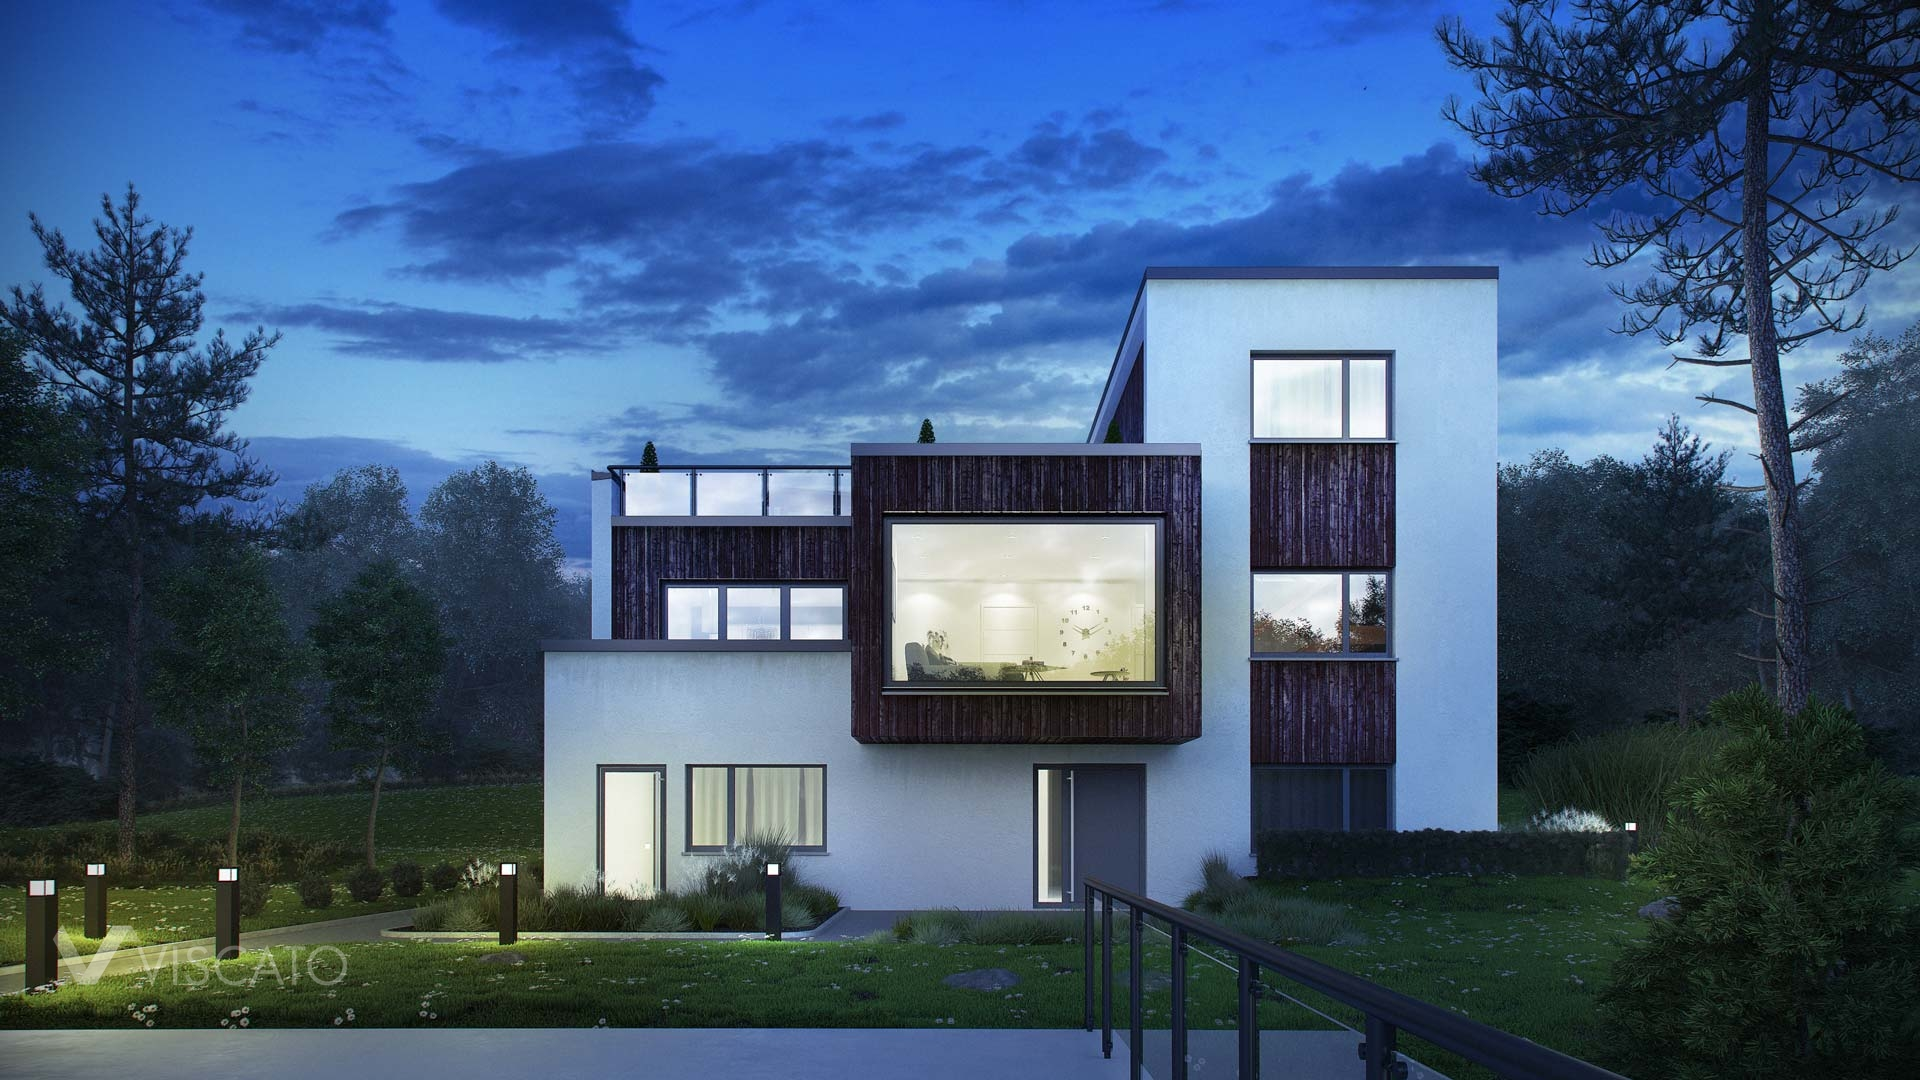 Night time renderings of modern villa in Norway - view from front